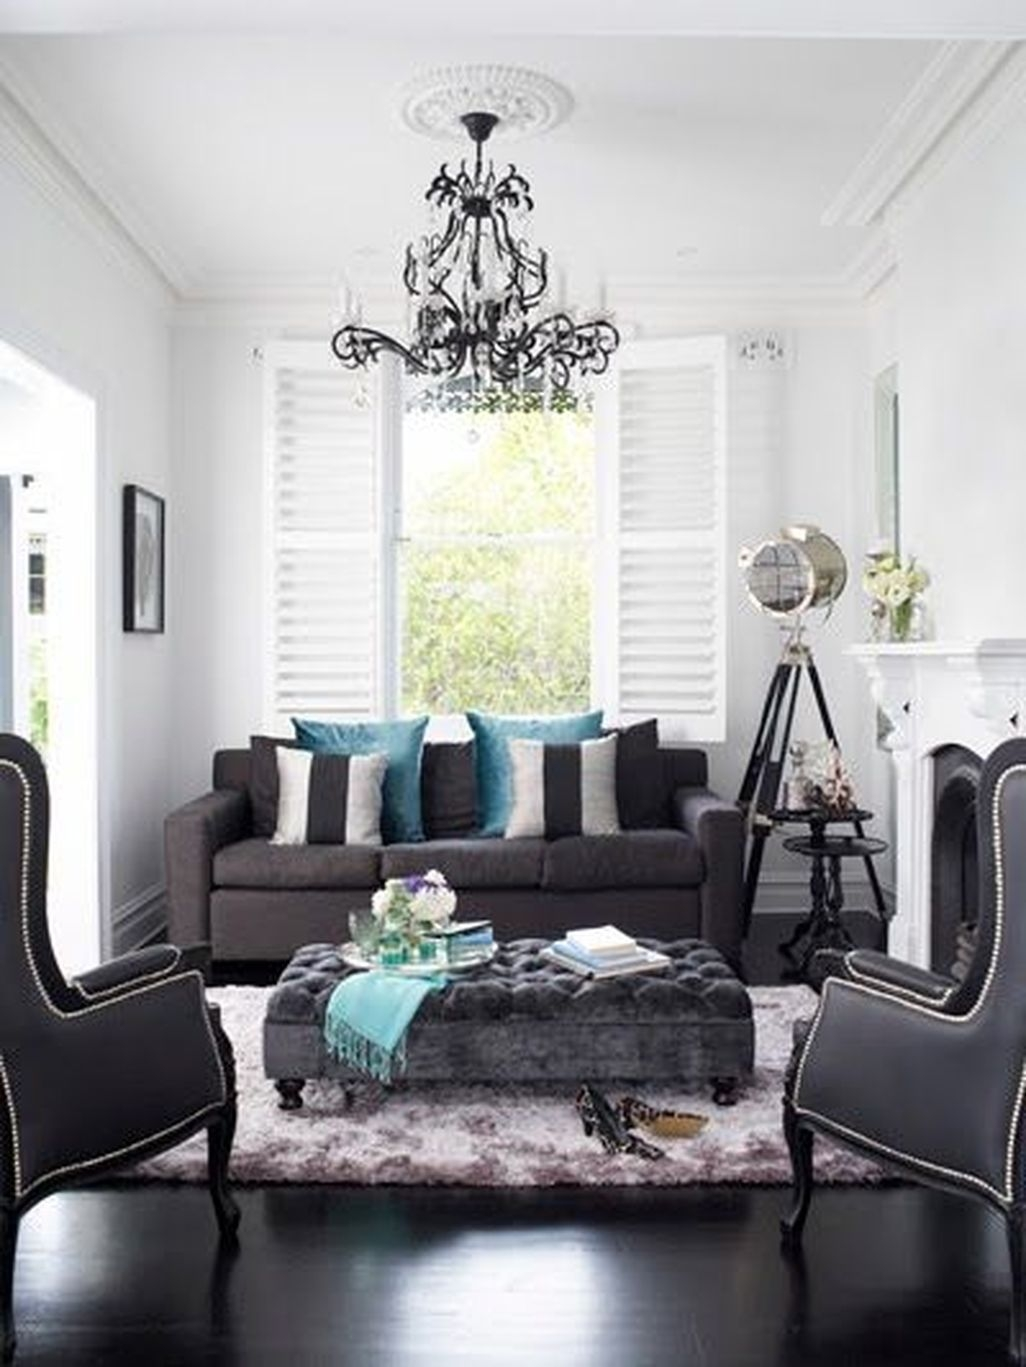 Charmant Gray And Silver Living Room